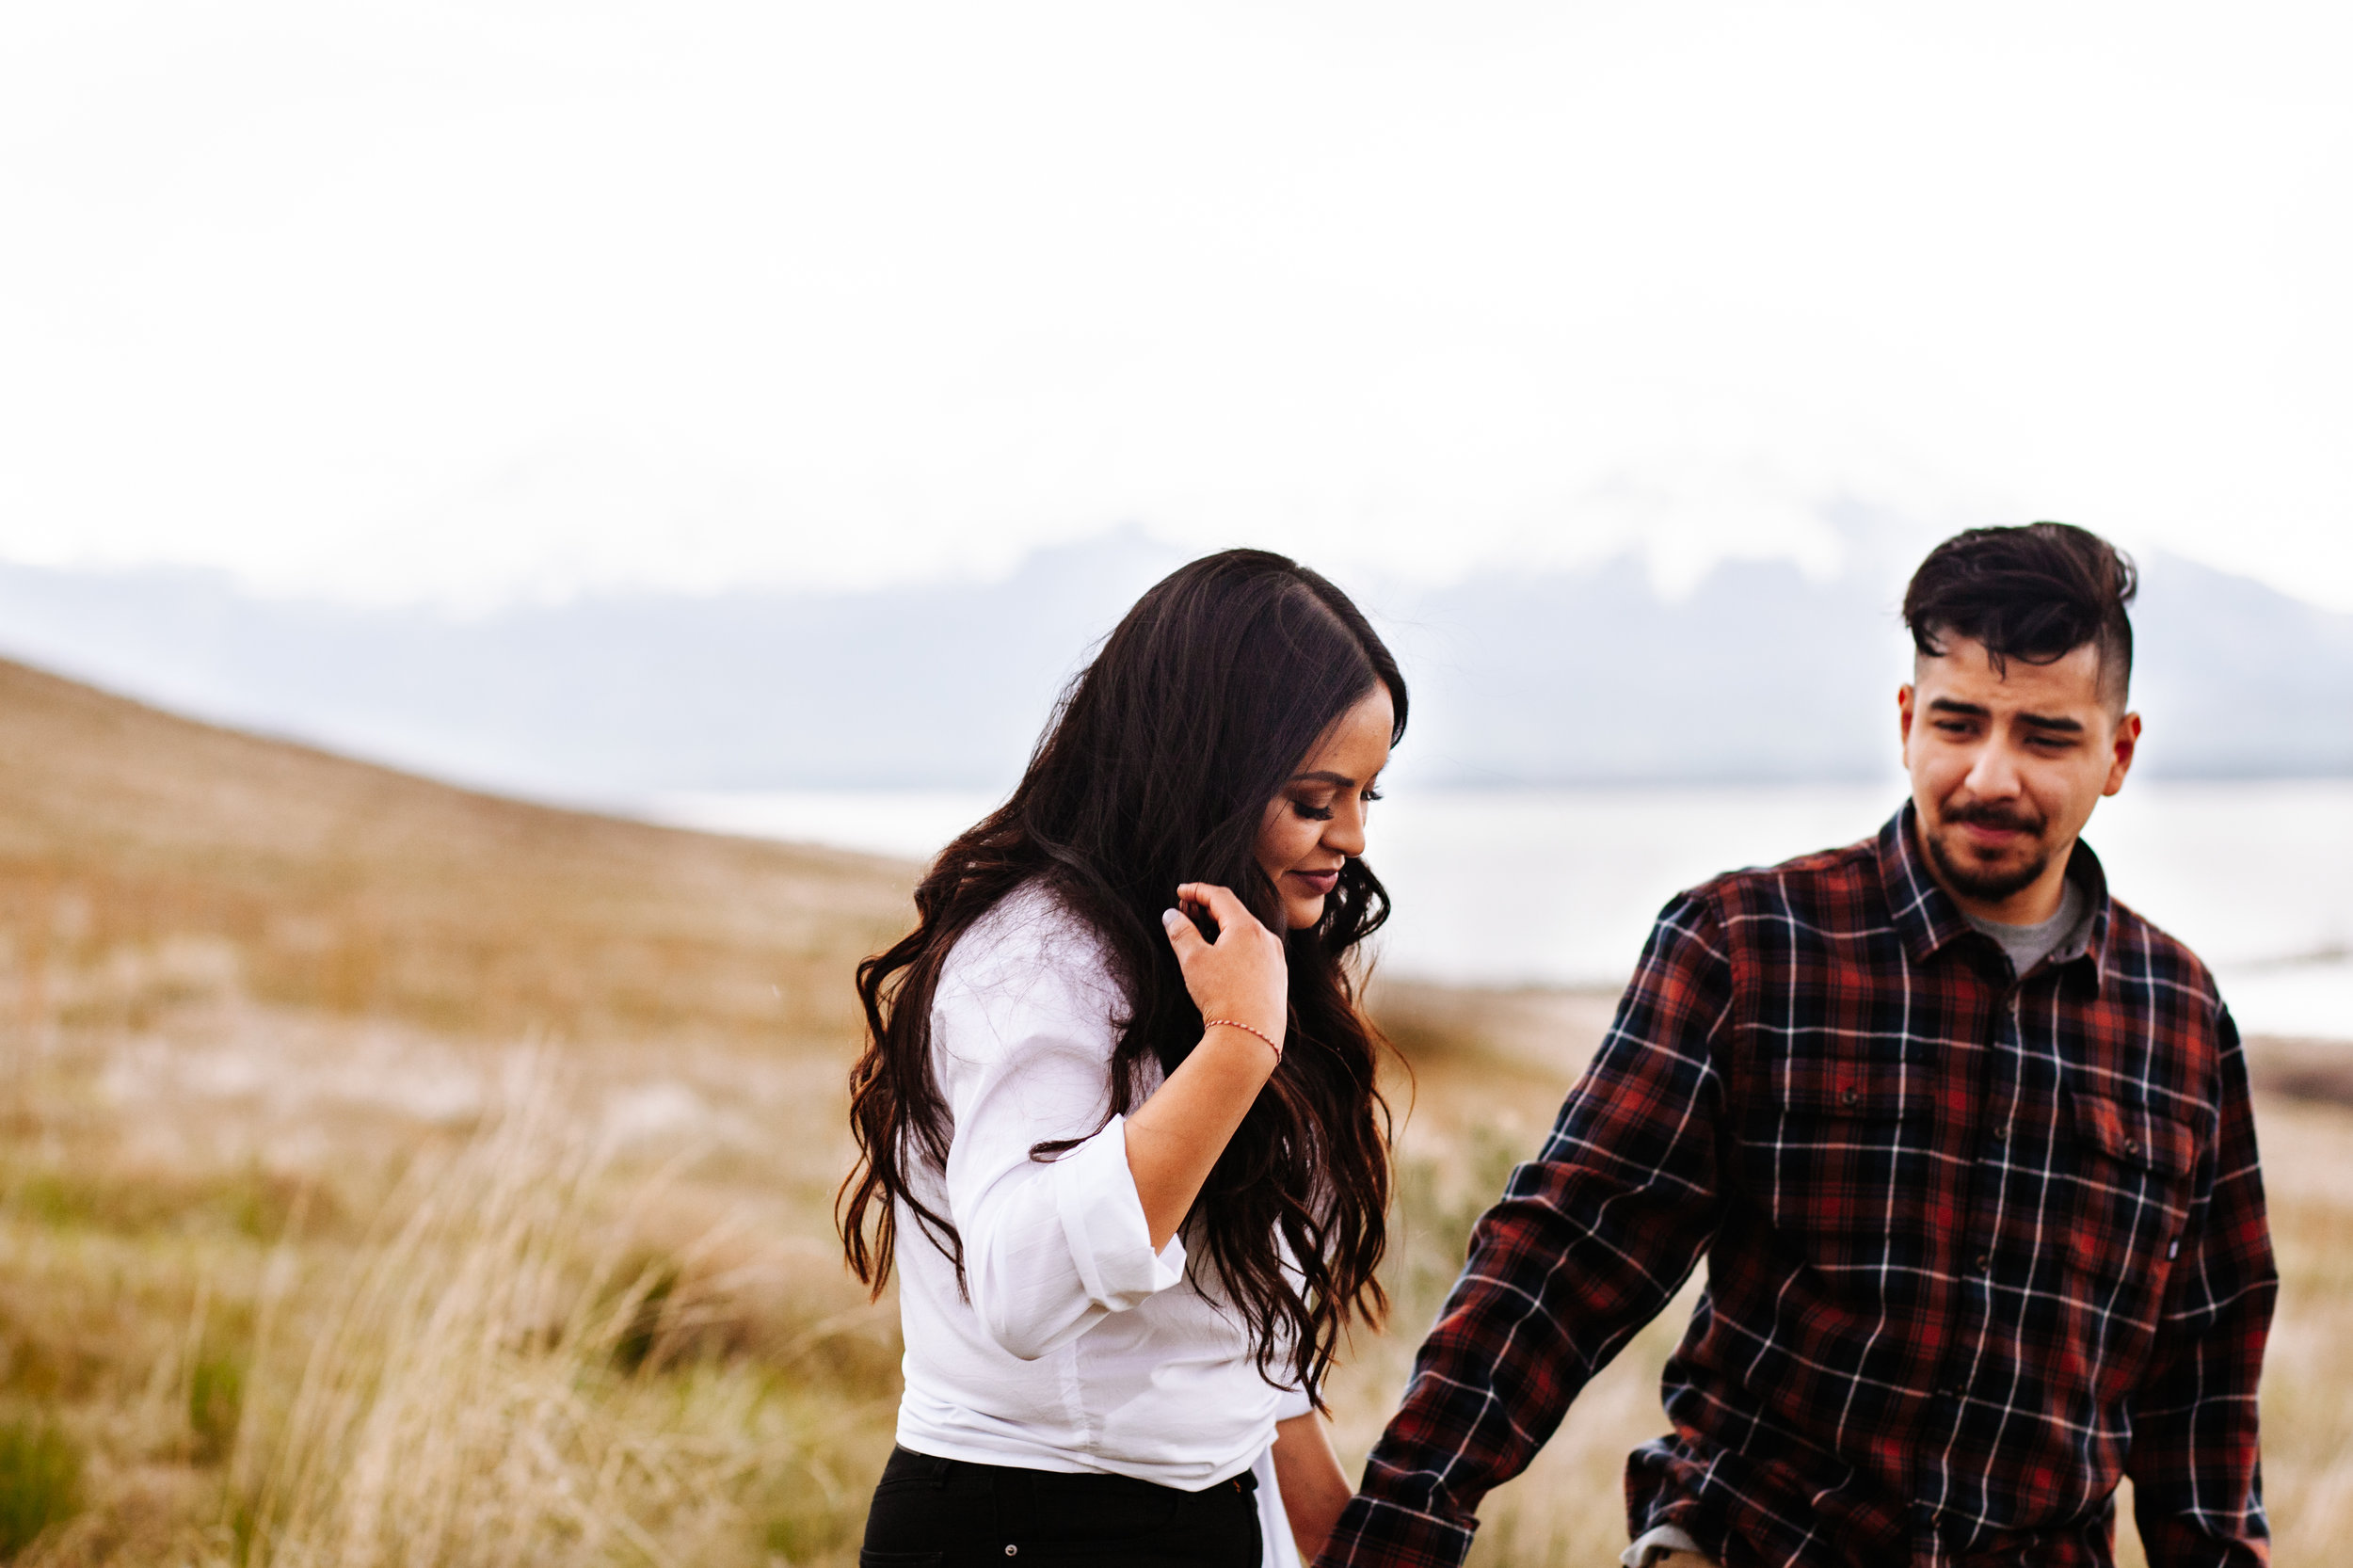 +Grassy Fields +Windy Engagement Session +Utah Engagement  Photographer +SLC Engagement +Utah Wedding Photographer +Marina Rey Photo-7899.jpg